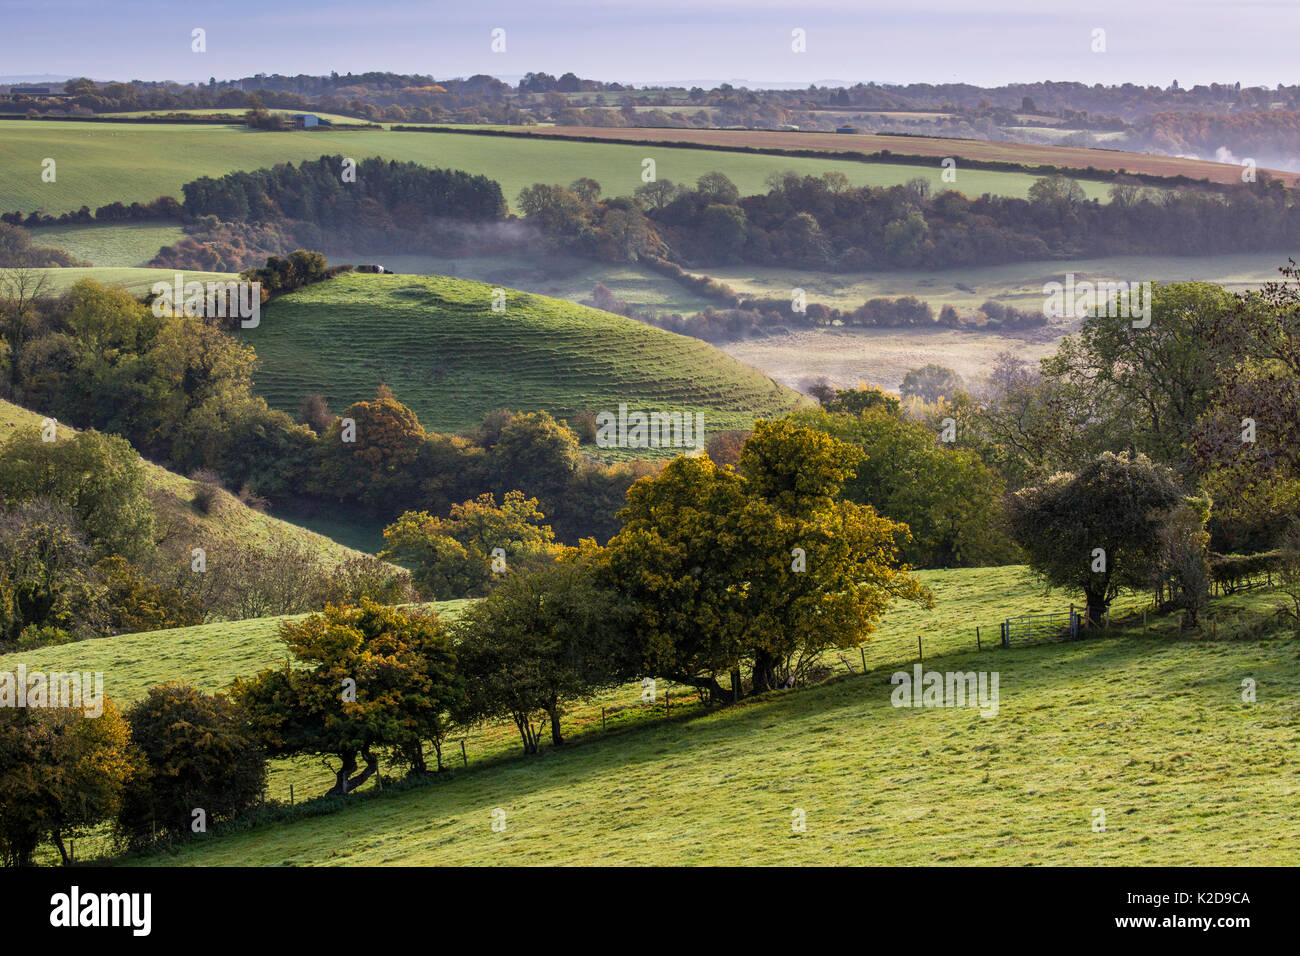 Autumn view towards St.Catherines Valley from Cold Ashton, Gloucestershire. St. Catherine's Valley is a biological Site of Special Scientific Interest. October 2015. - Stock Image